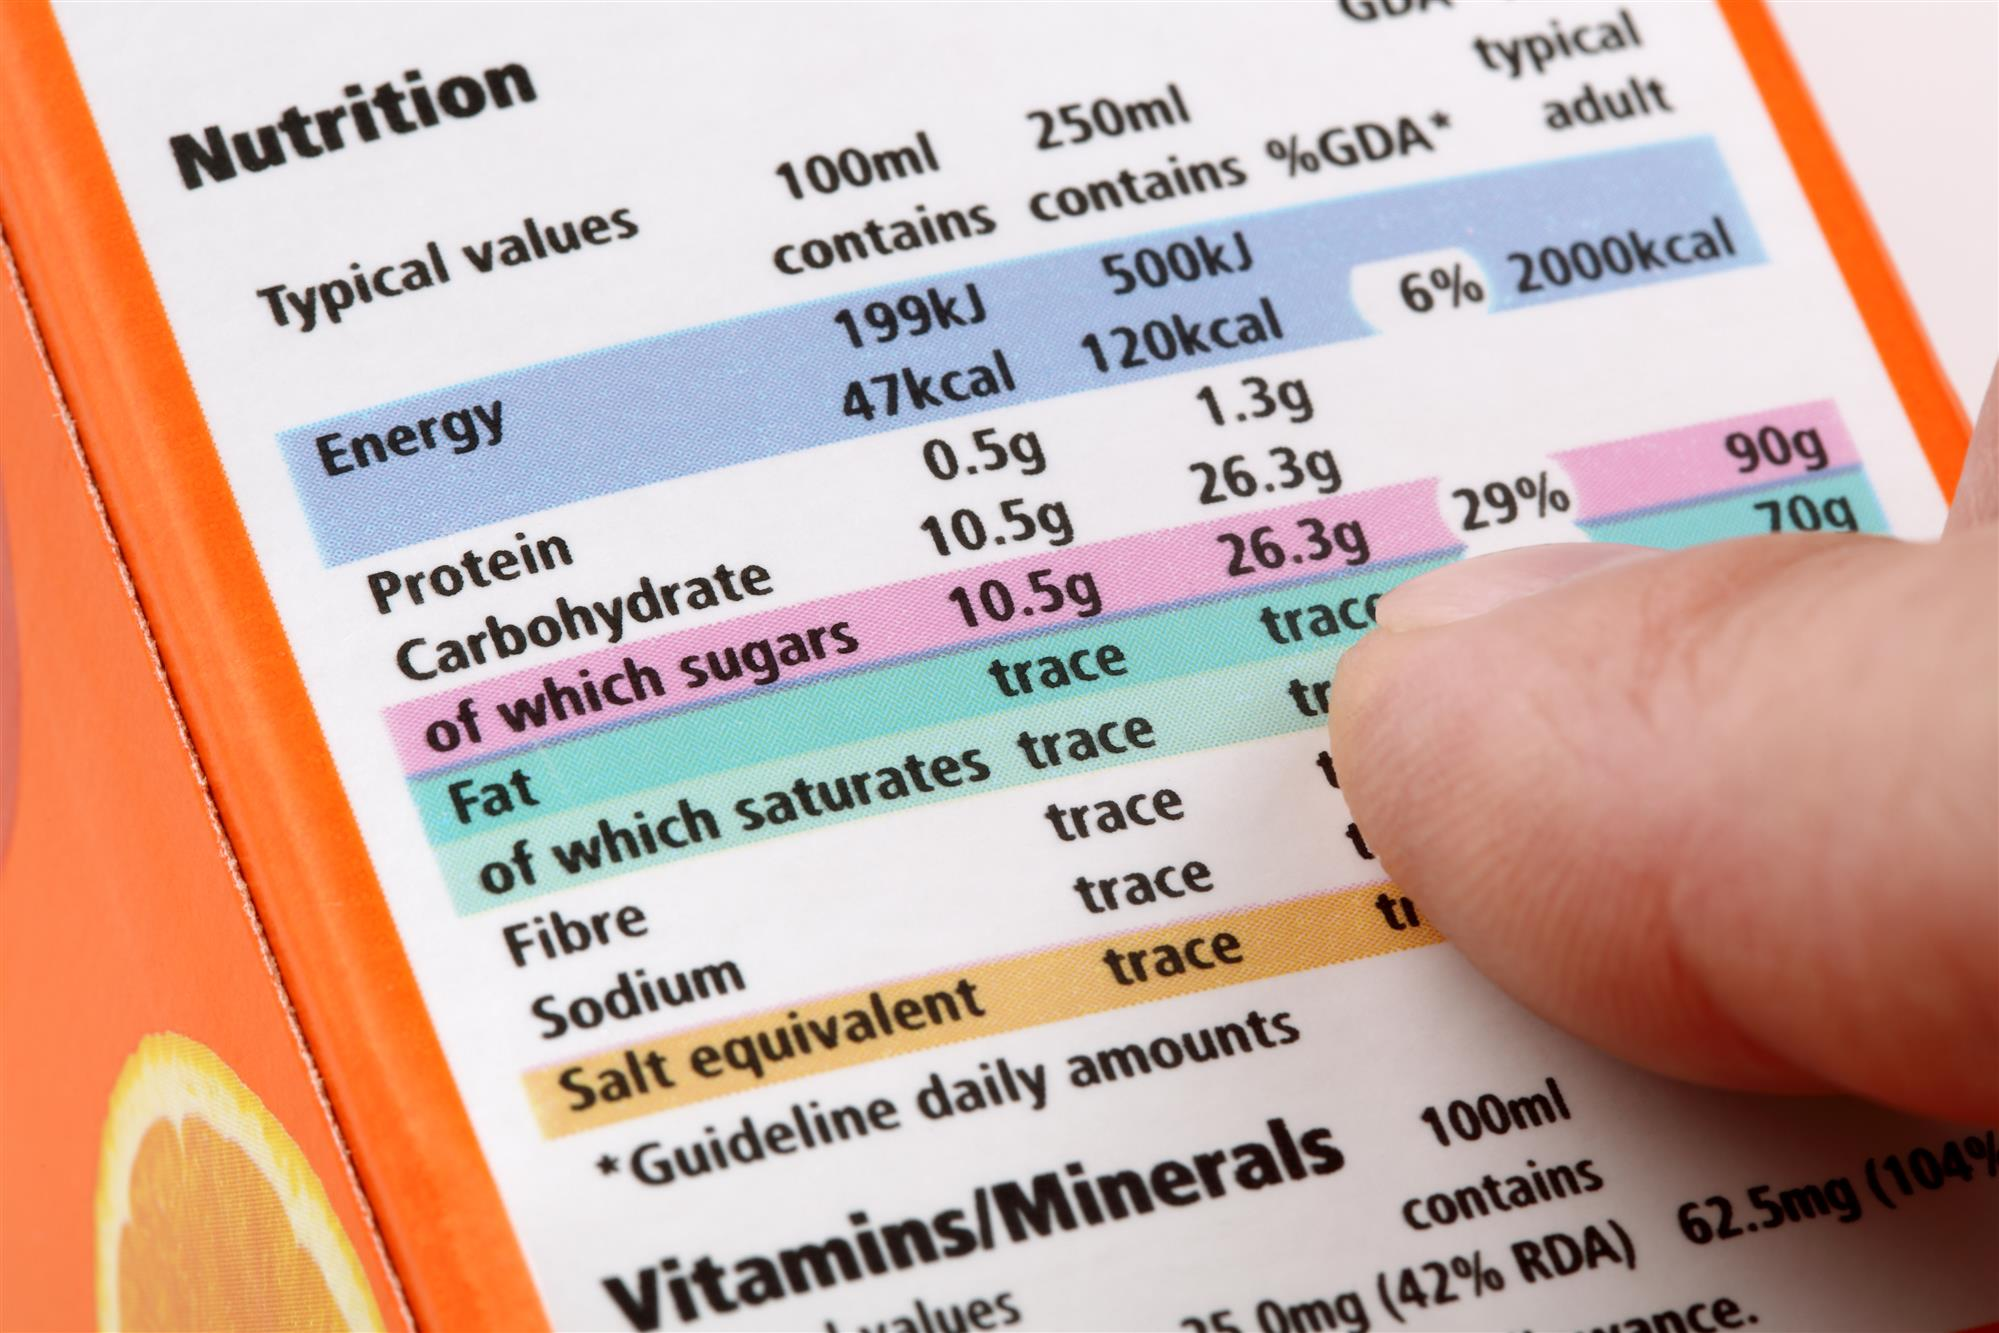 nutritional food label